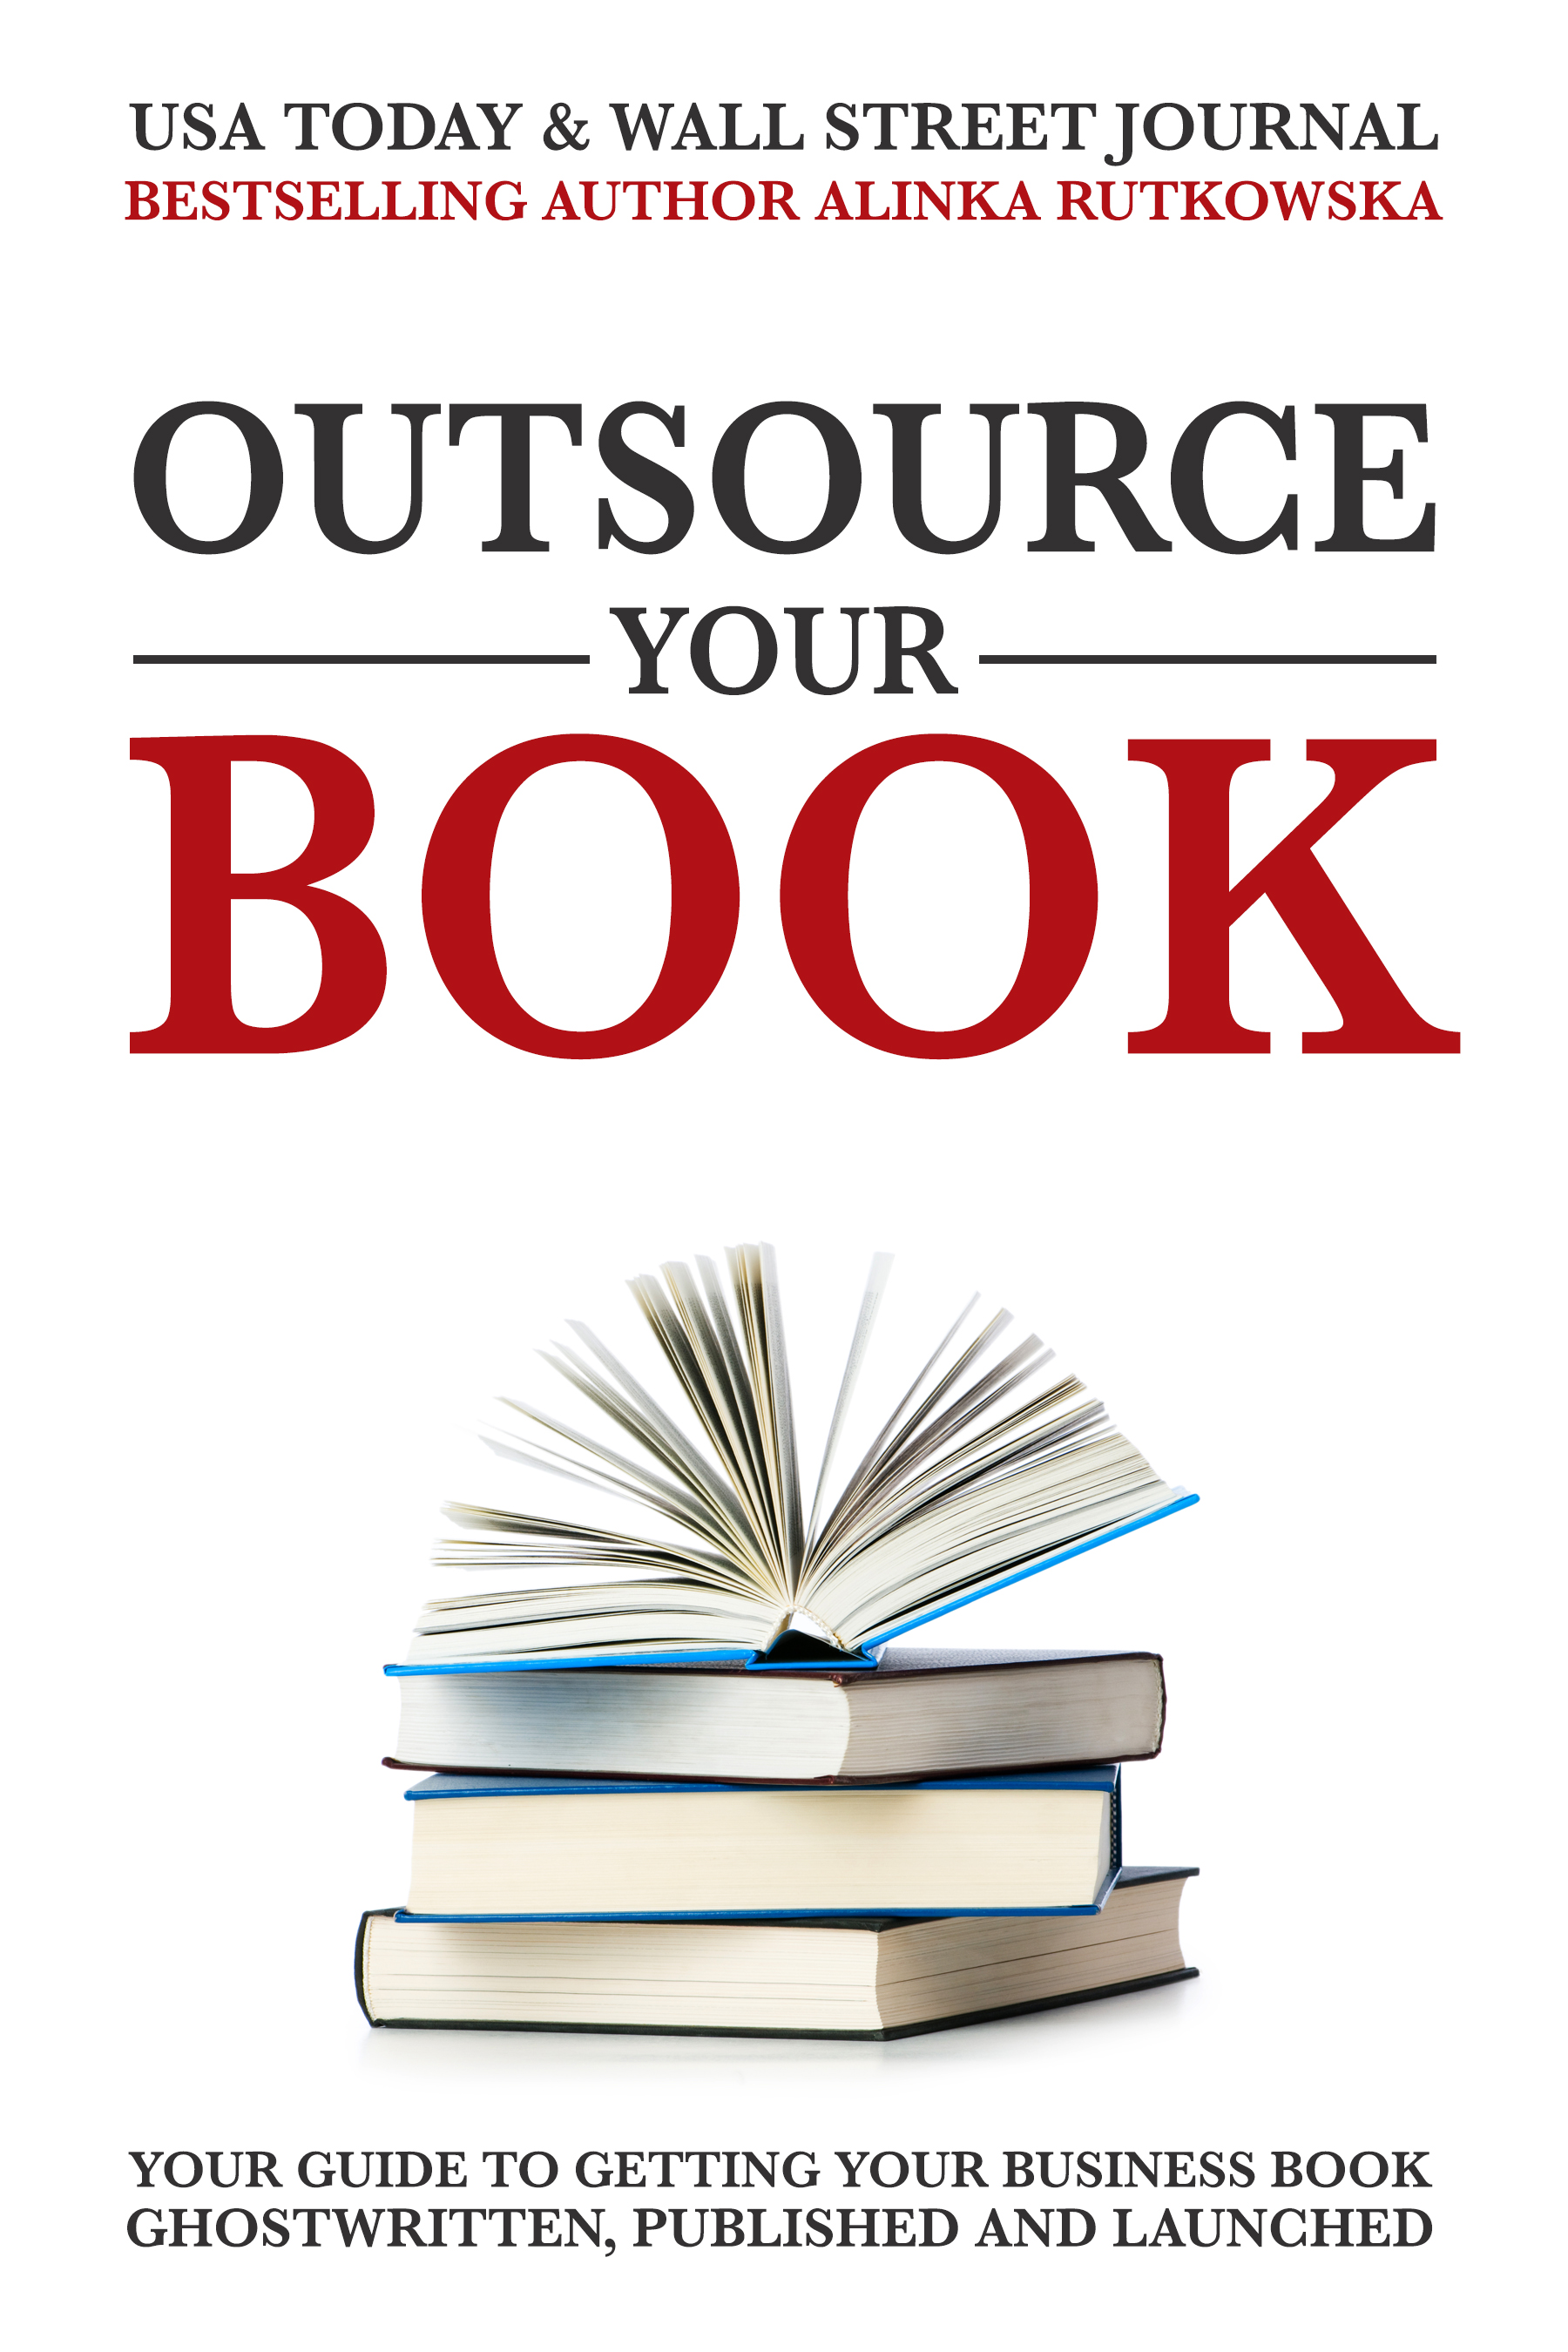 575788e8 Outsource Your Book: Your Guide to Getting Your Business Book Ghostwritten,  Published and Launched